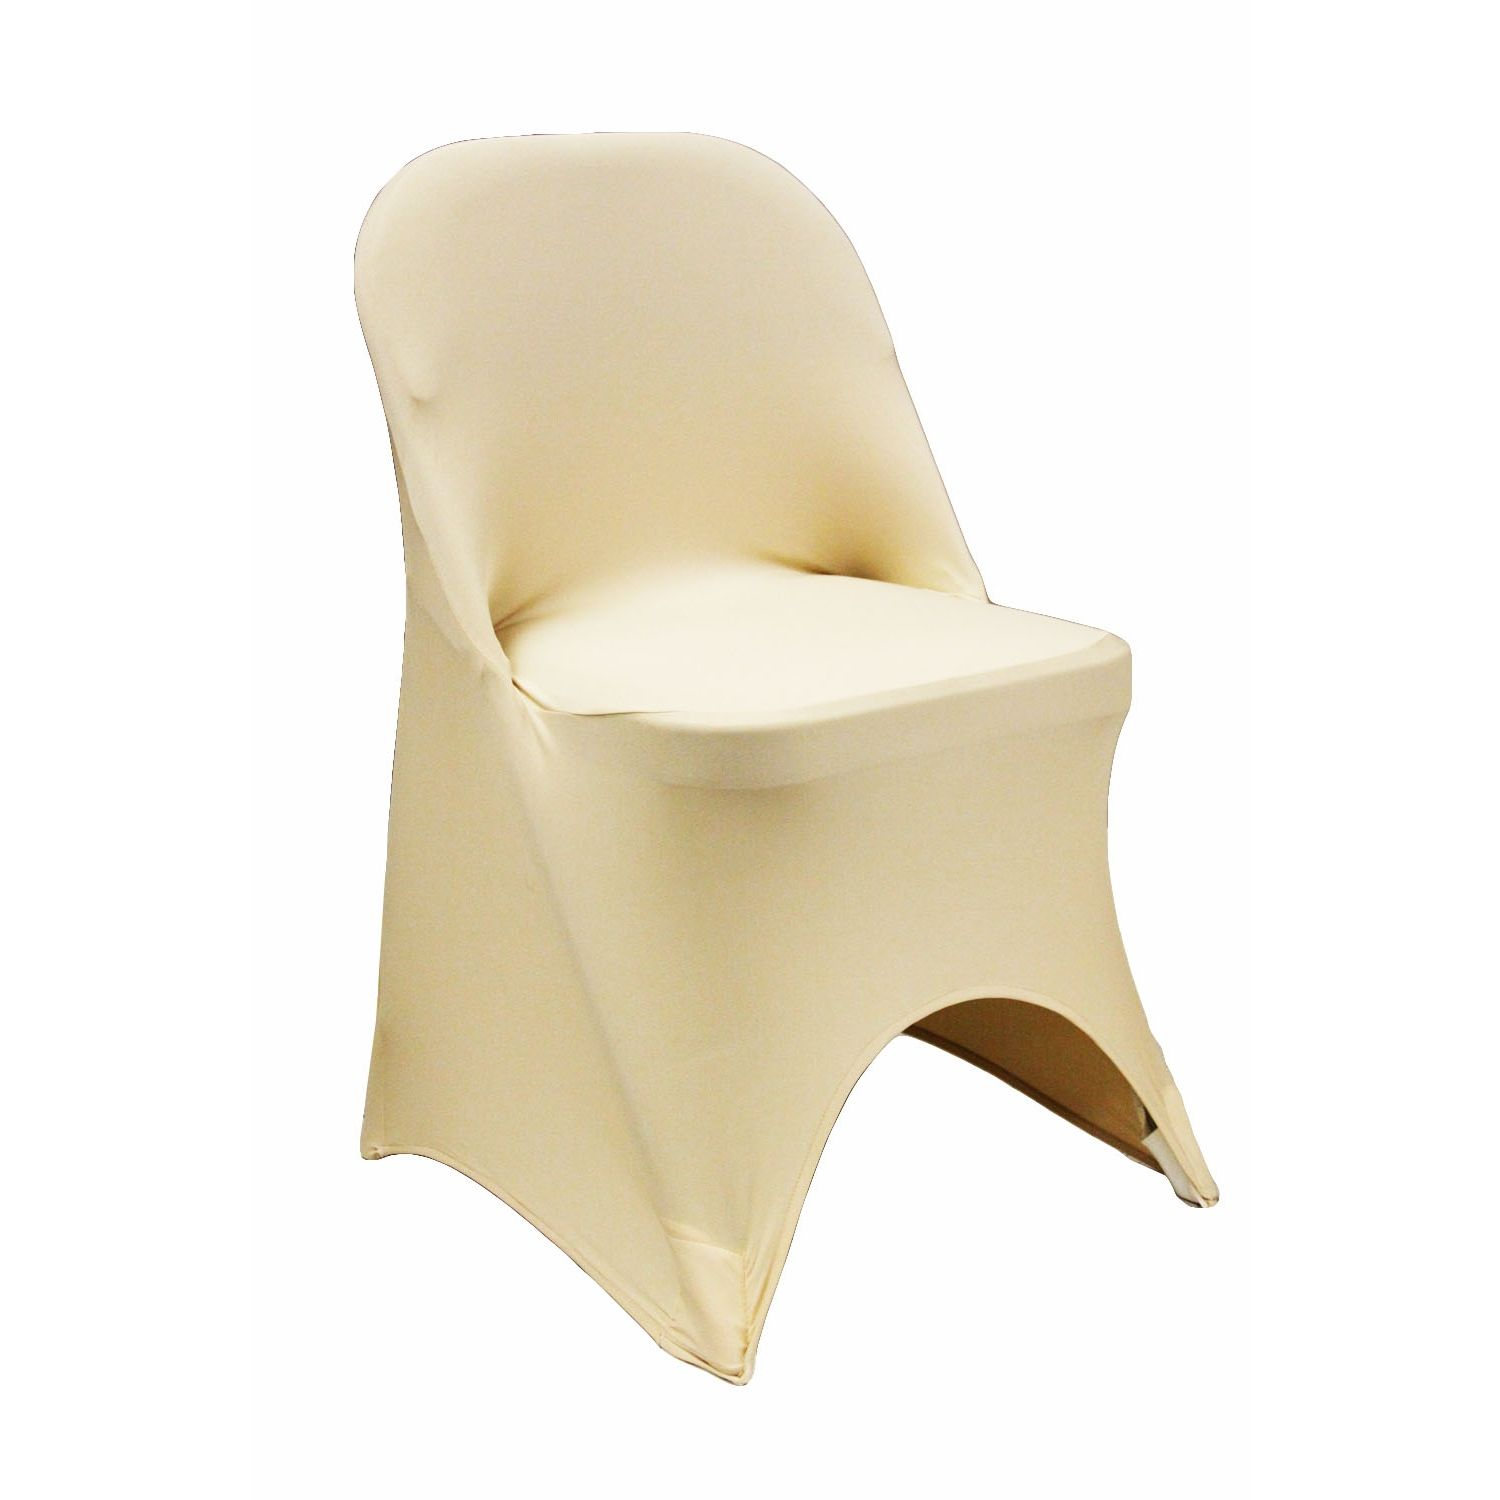 Folding Spandex Chair Cover Champagne Folding Chair Covers